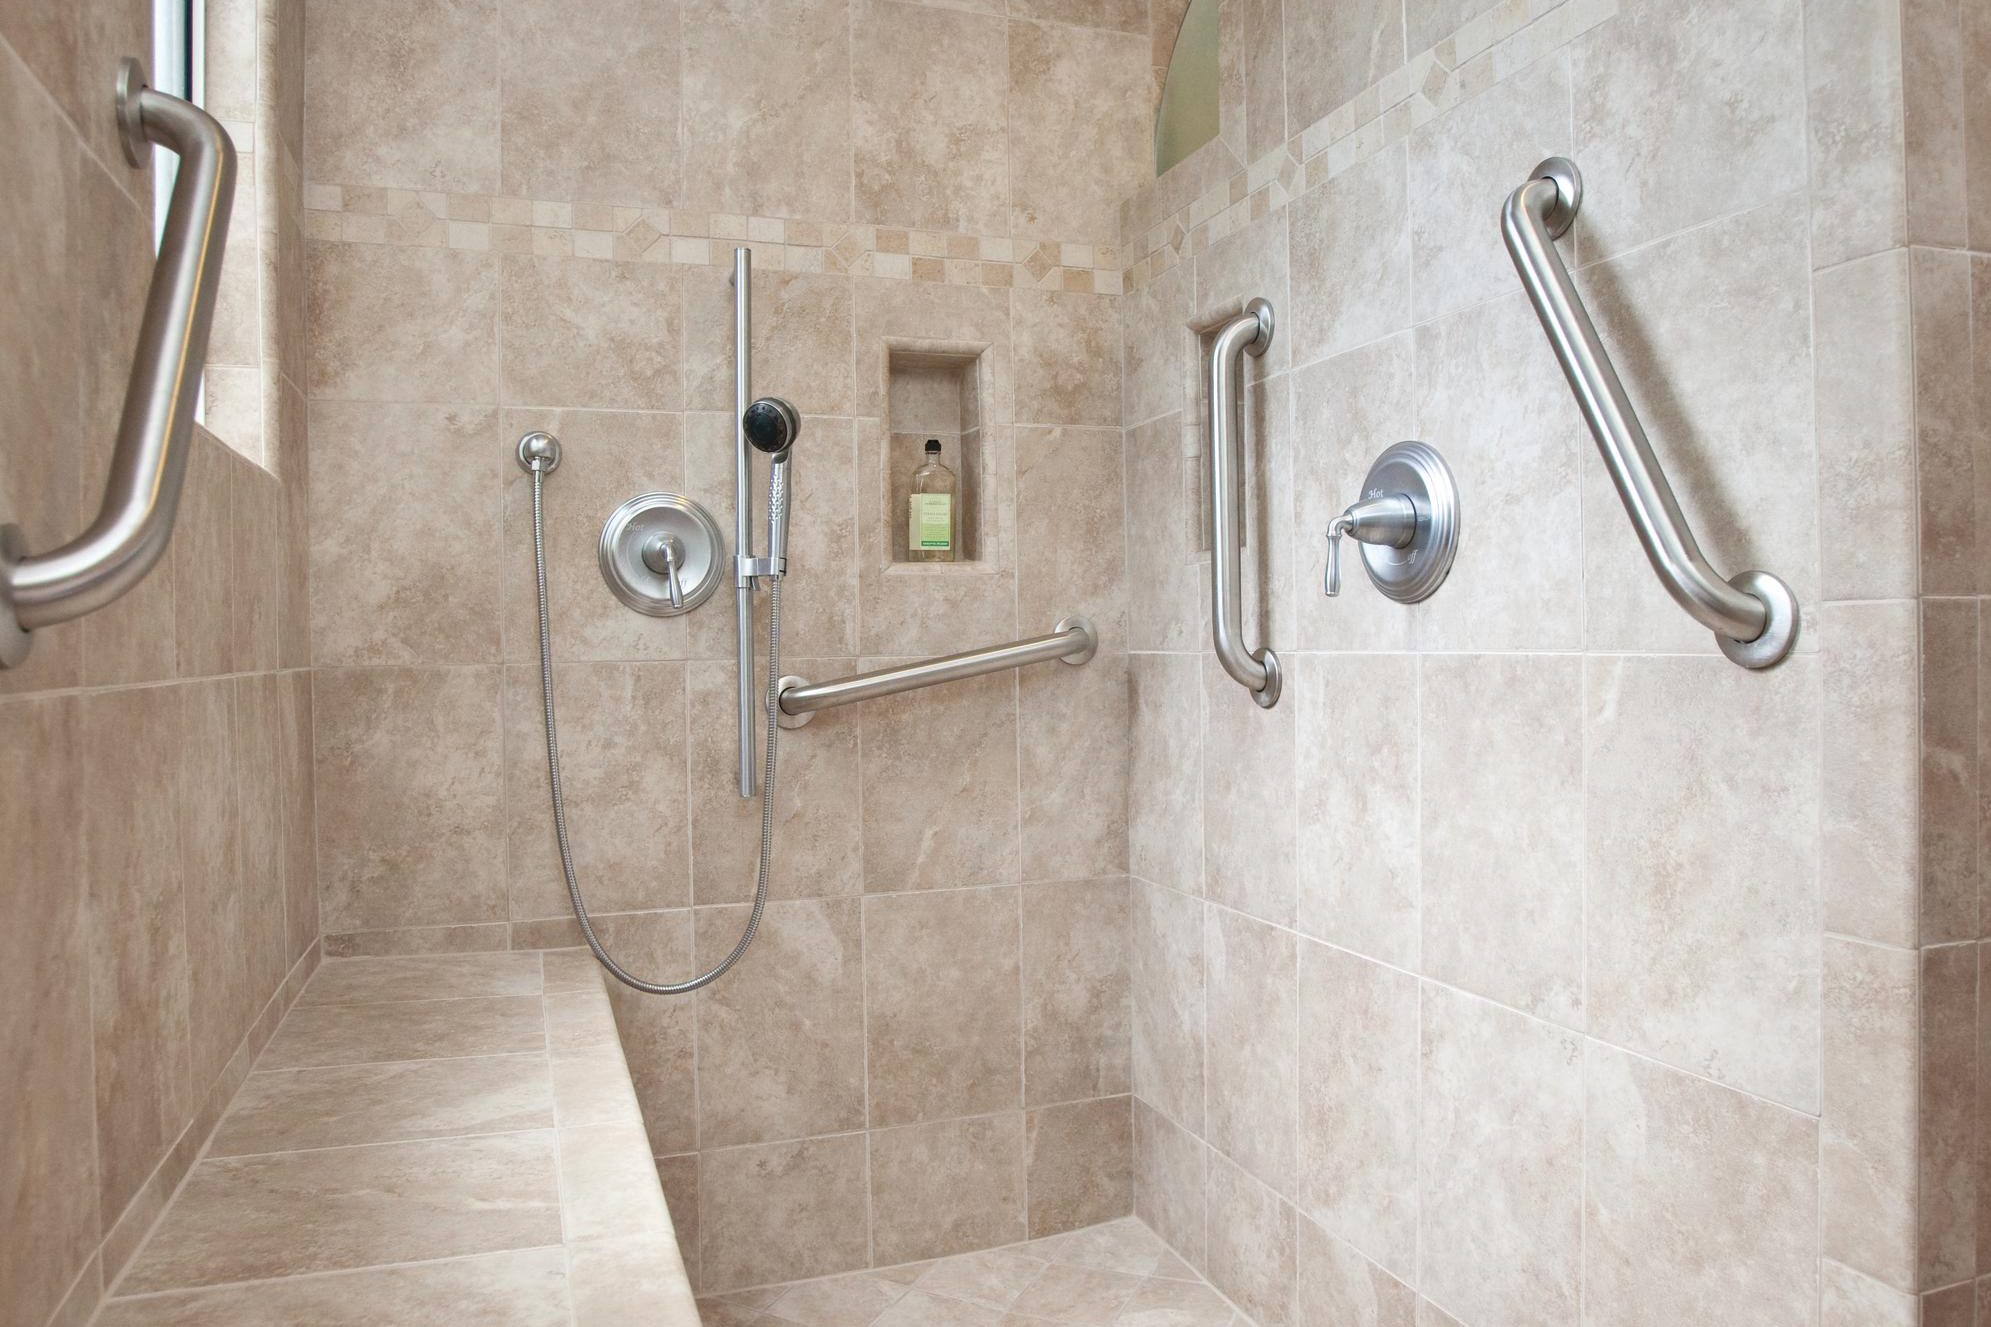 AllAccess Pass Showers  Remodeling  Bath Design Kitchen Aging in Place CostEffective